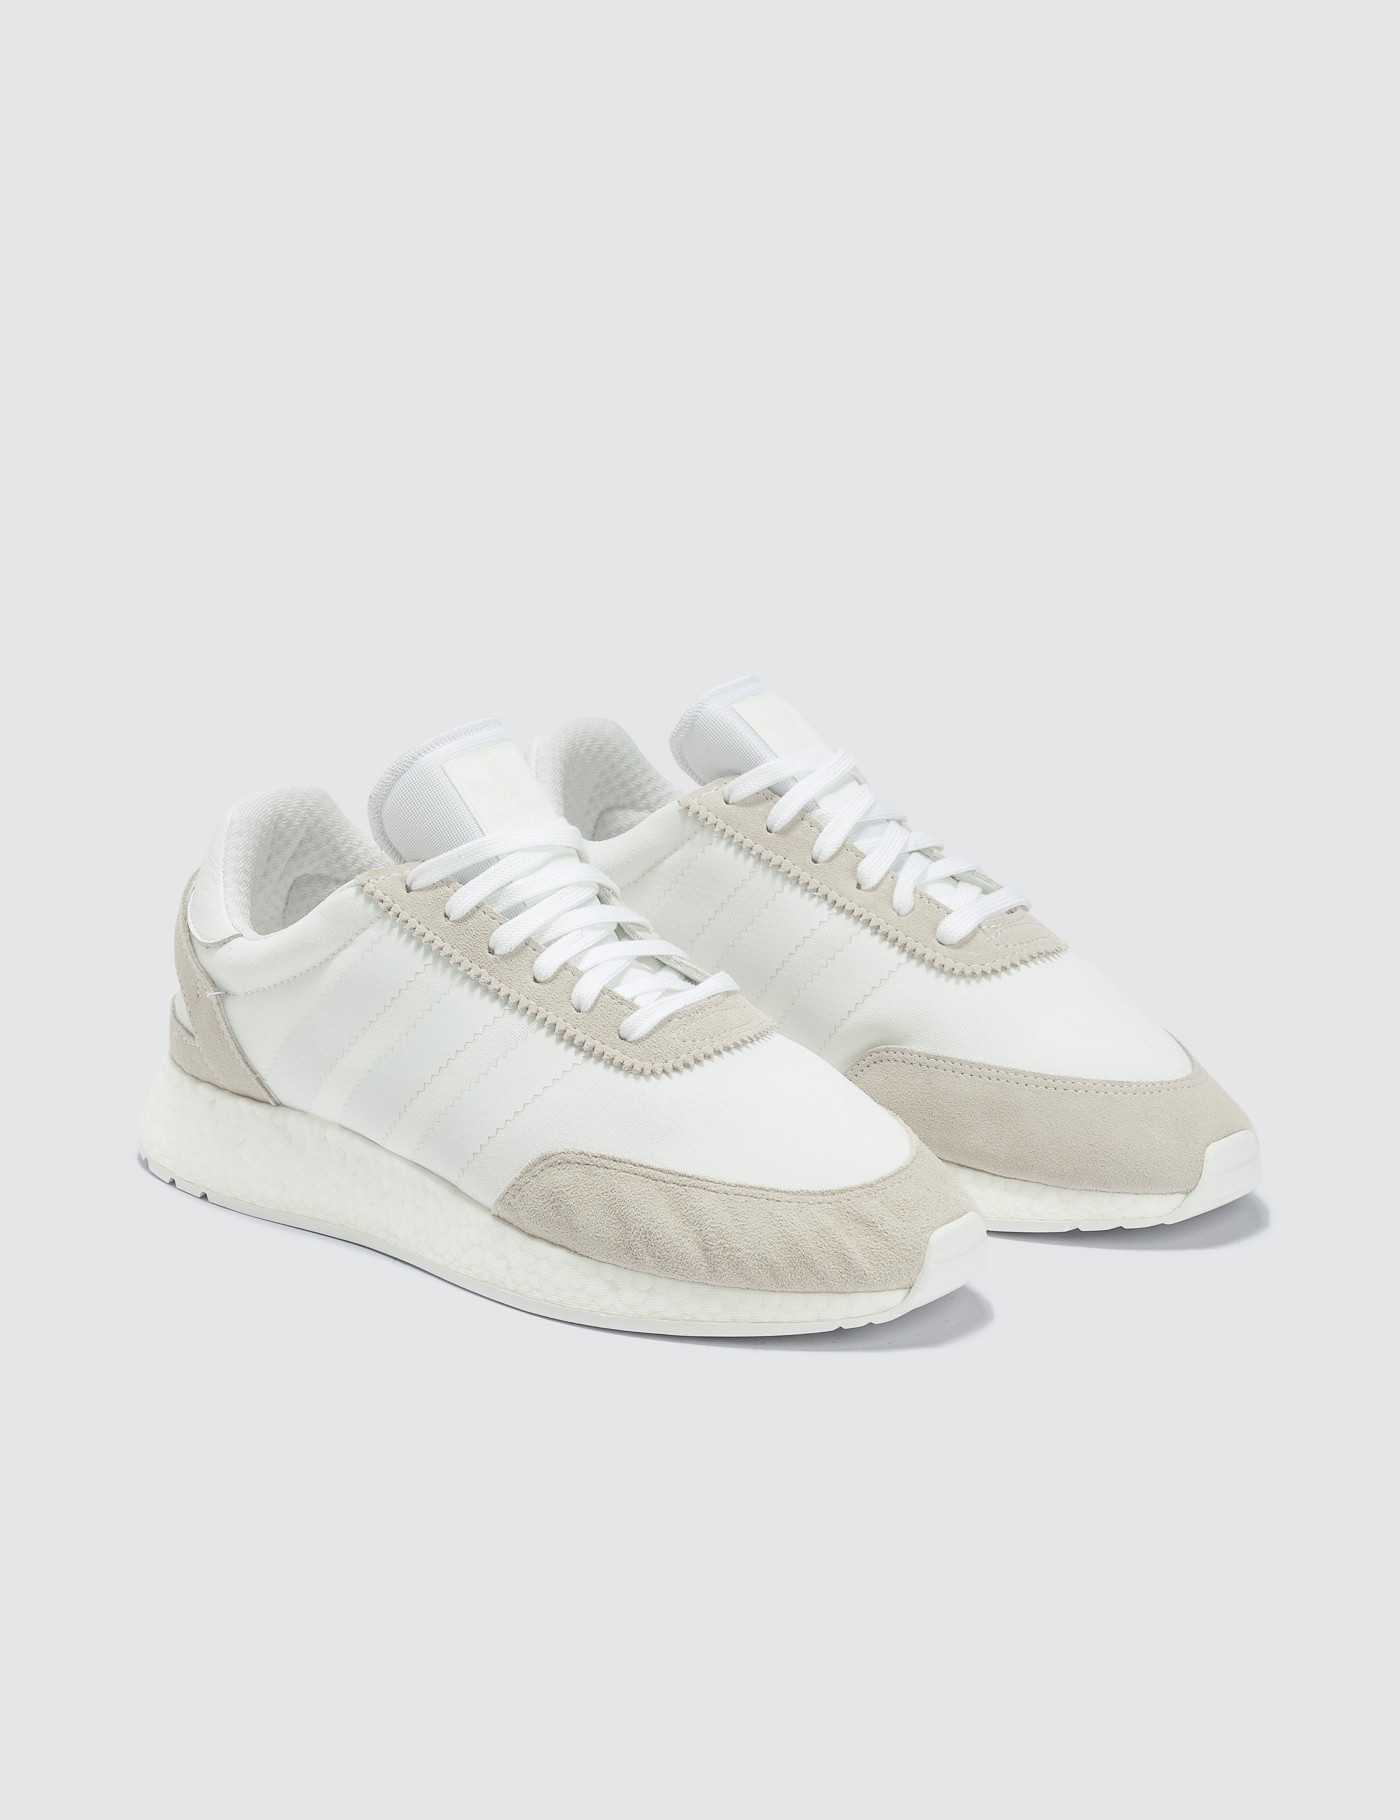 Adidas Originals White I-5923 Sneakers